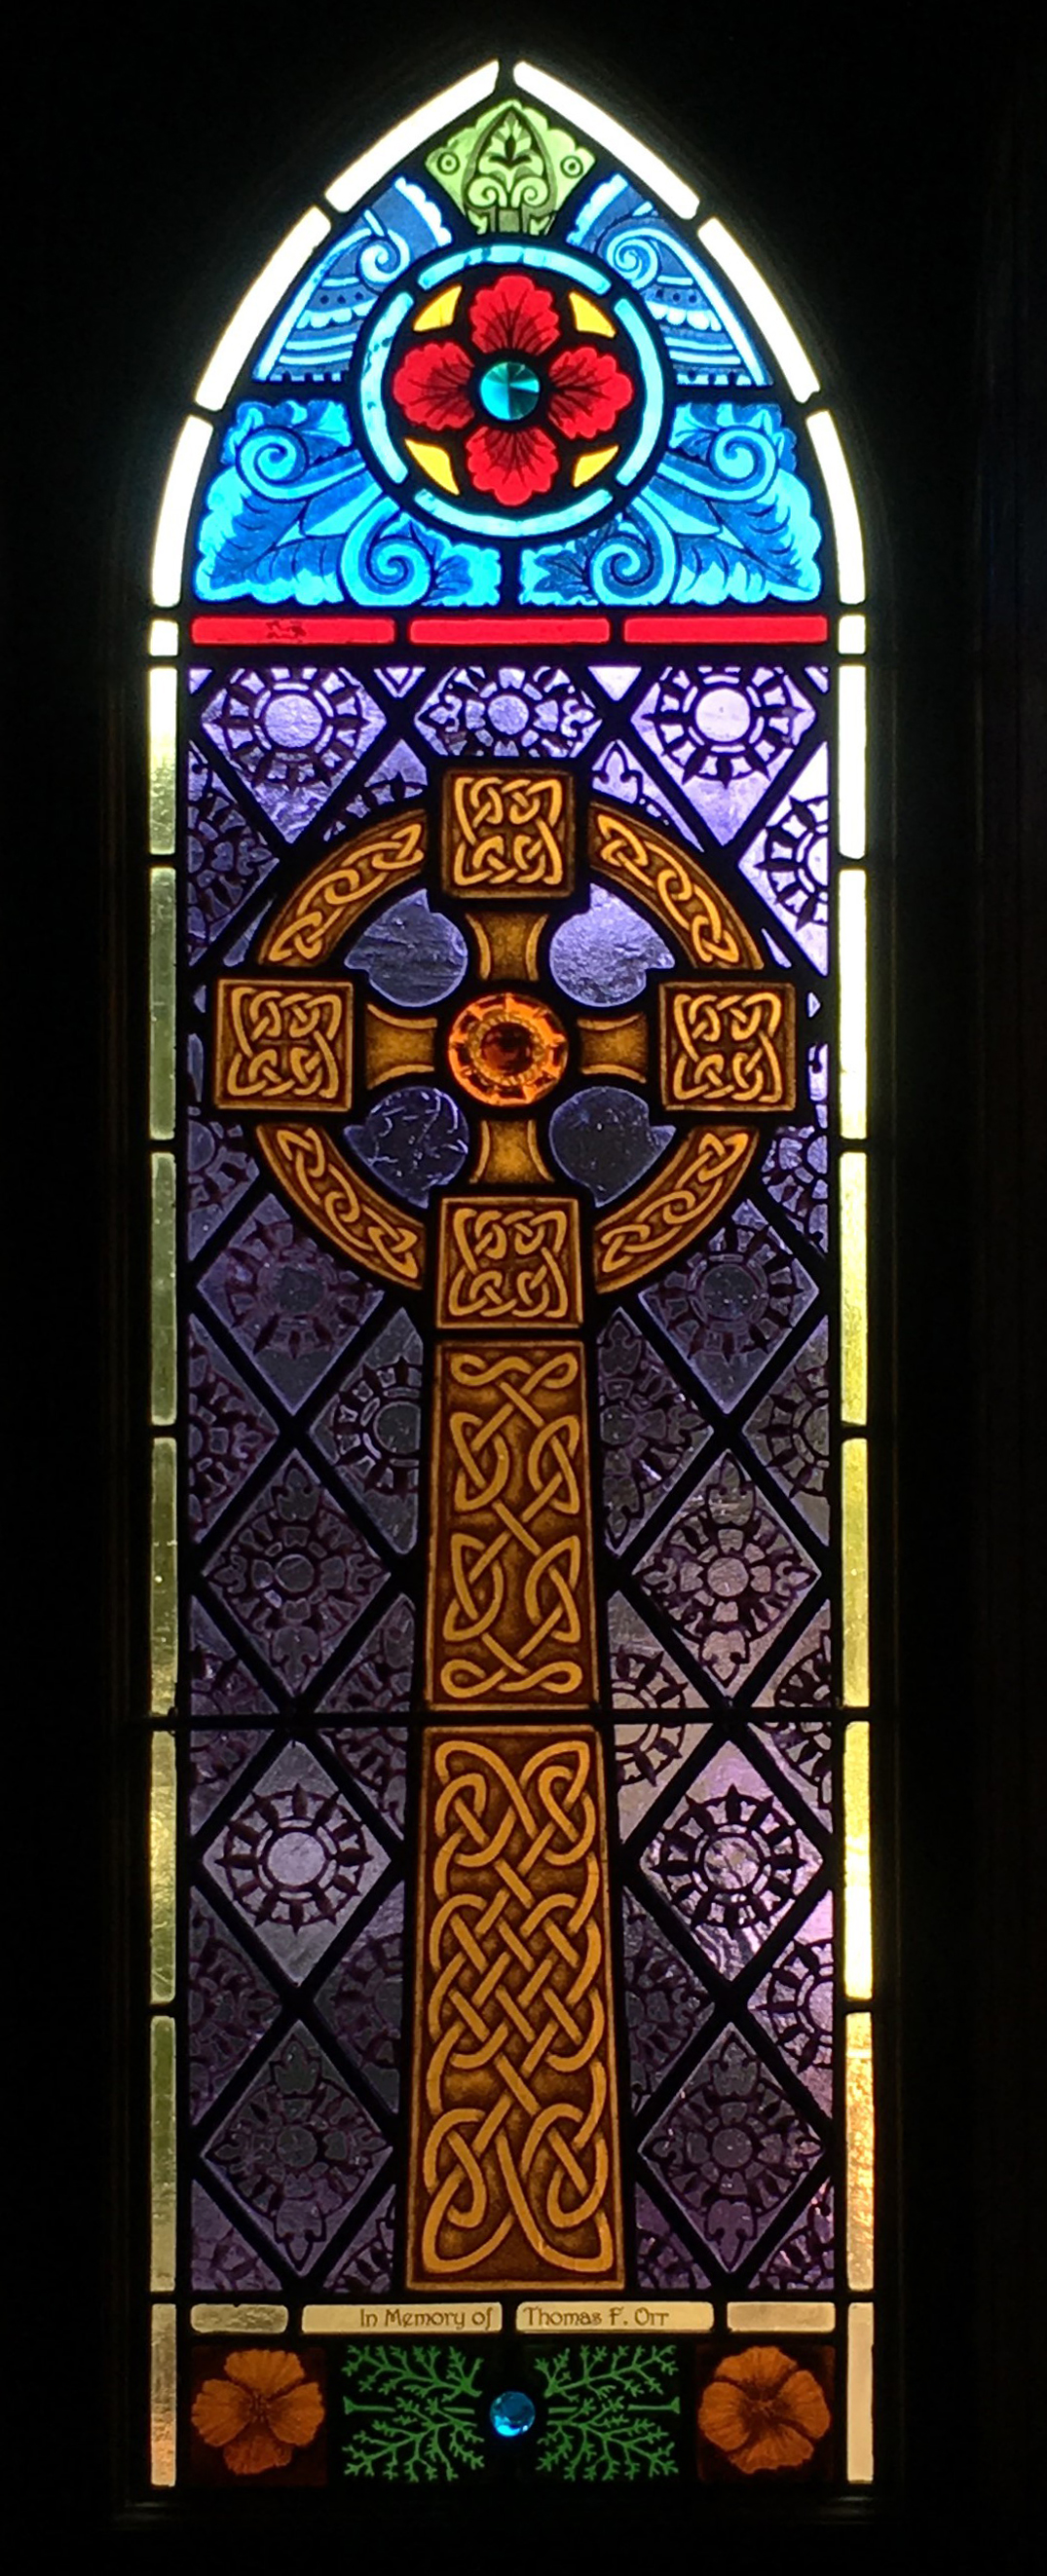 Commissioned memorial window